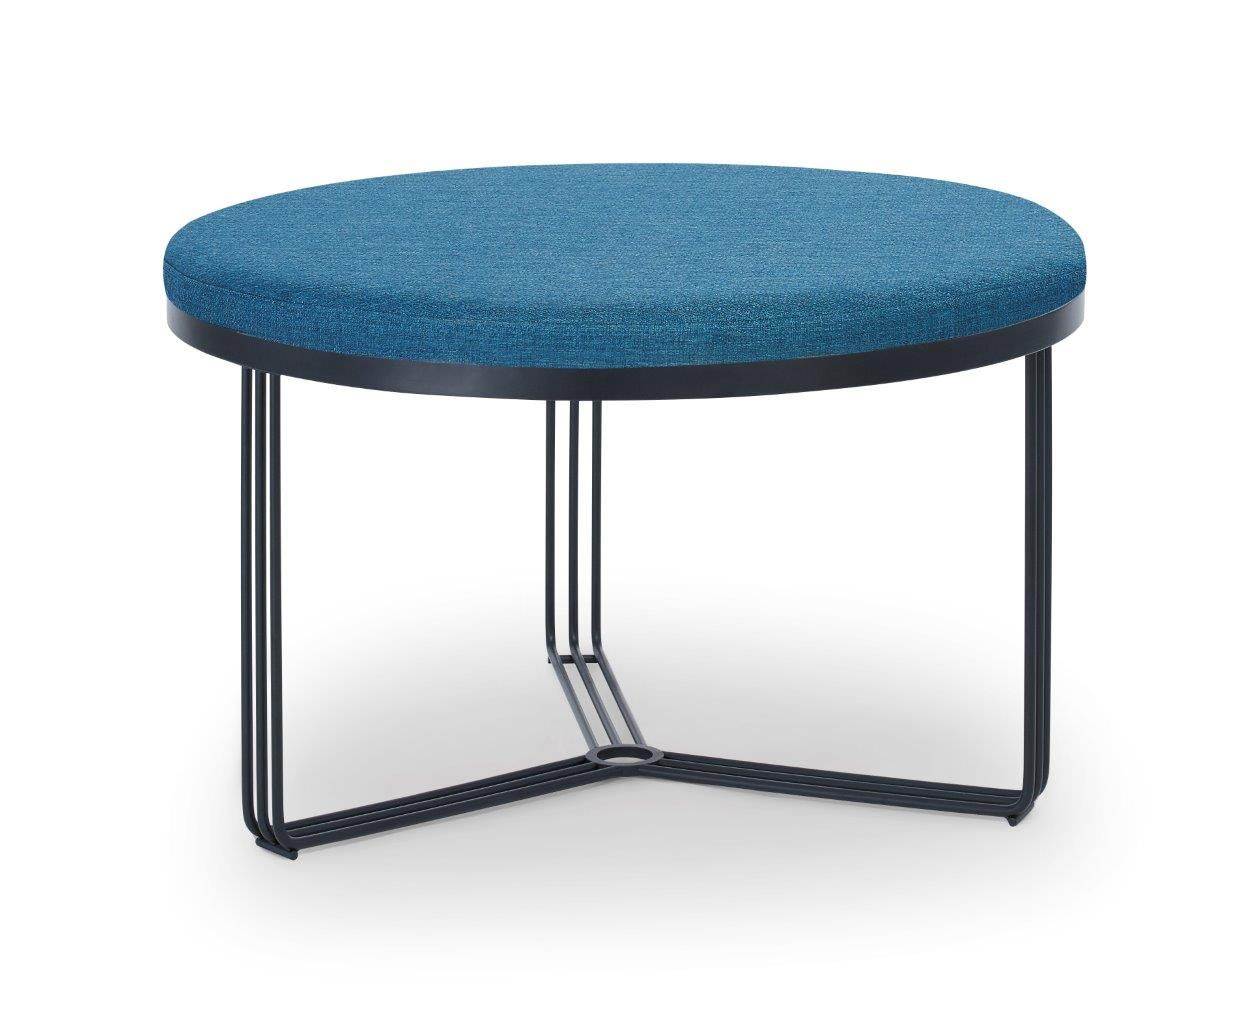 Gillmore Finn Collection Small Circular Coffee Table/Footstool with Upholstered Top and Matt  Black Frame